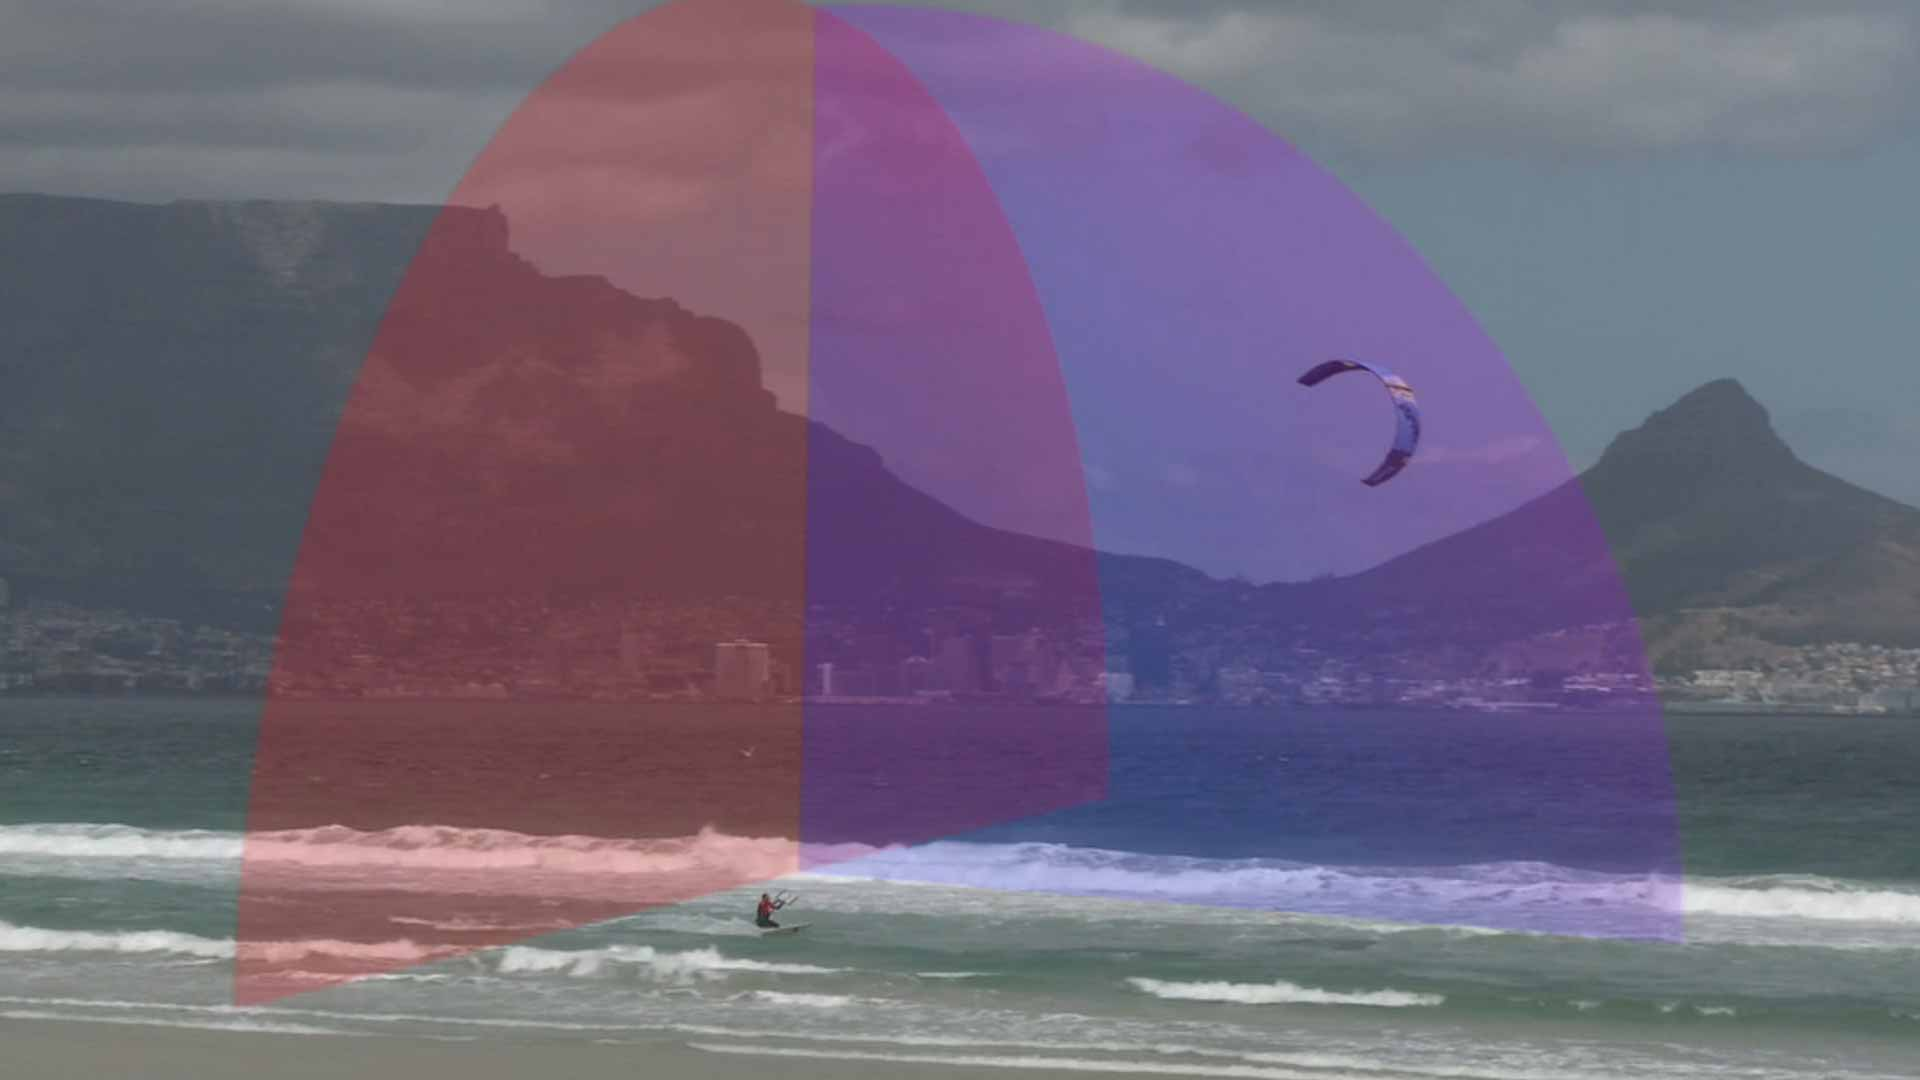 learn_wave_kitesurfing_W4a